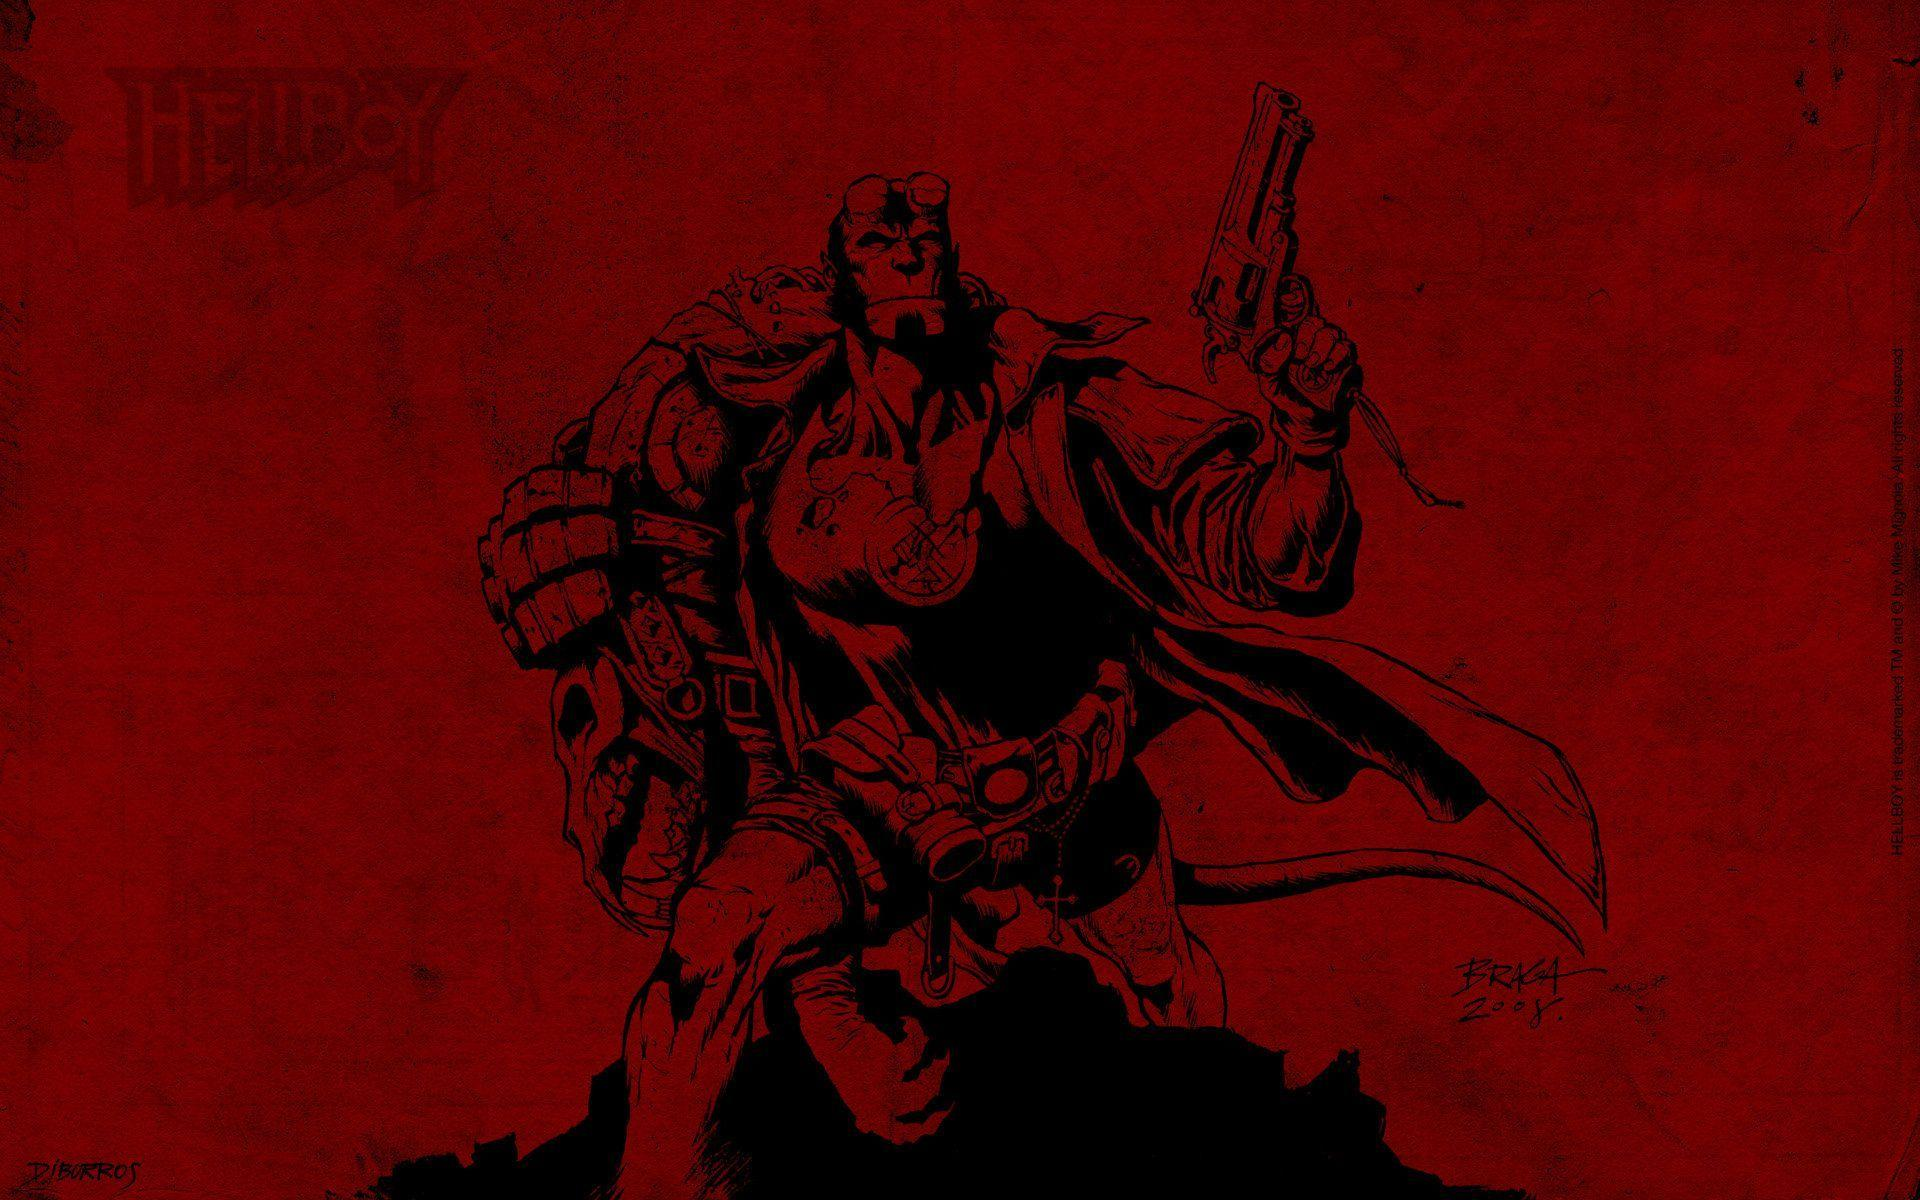 Hellboy Wallpapers - Full HD wallpaper search